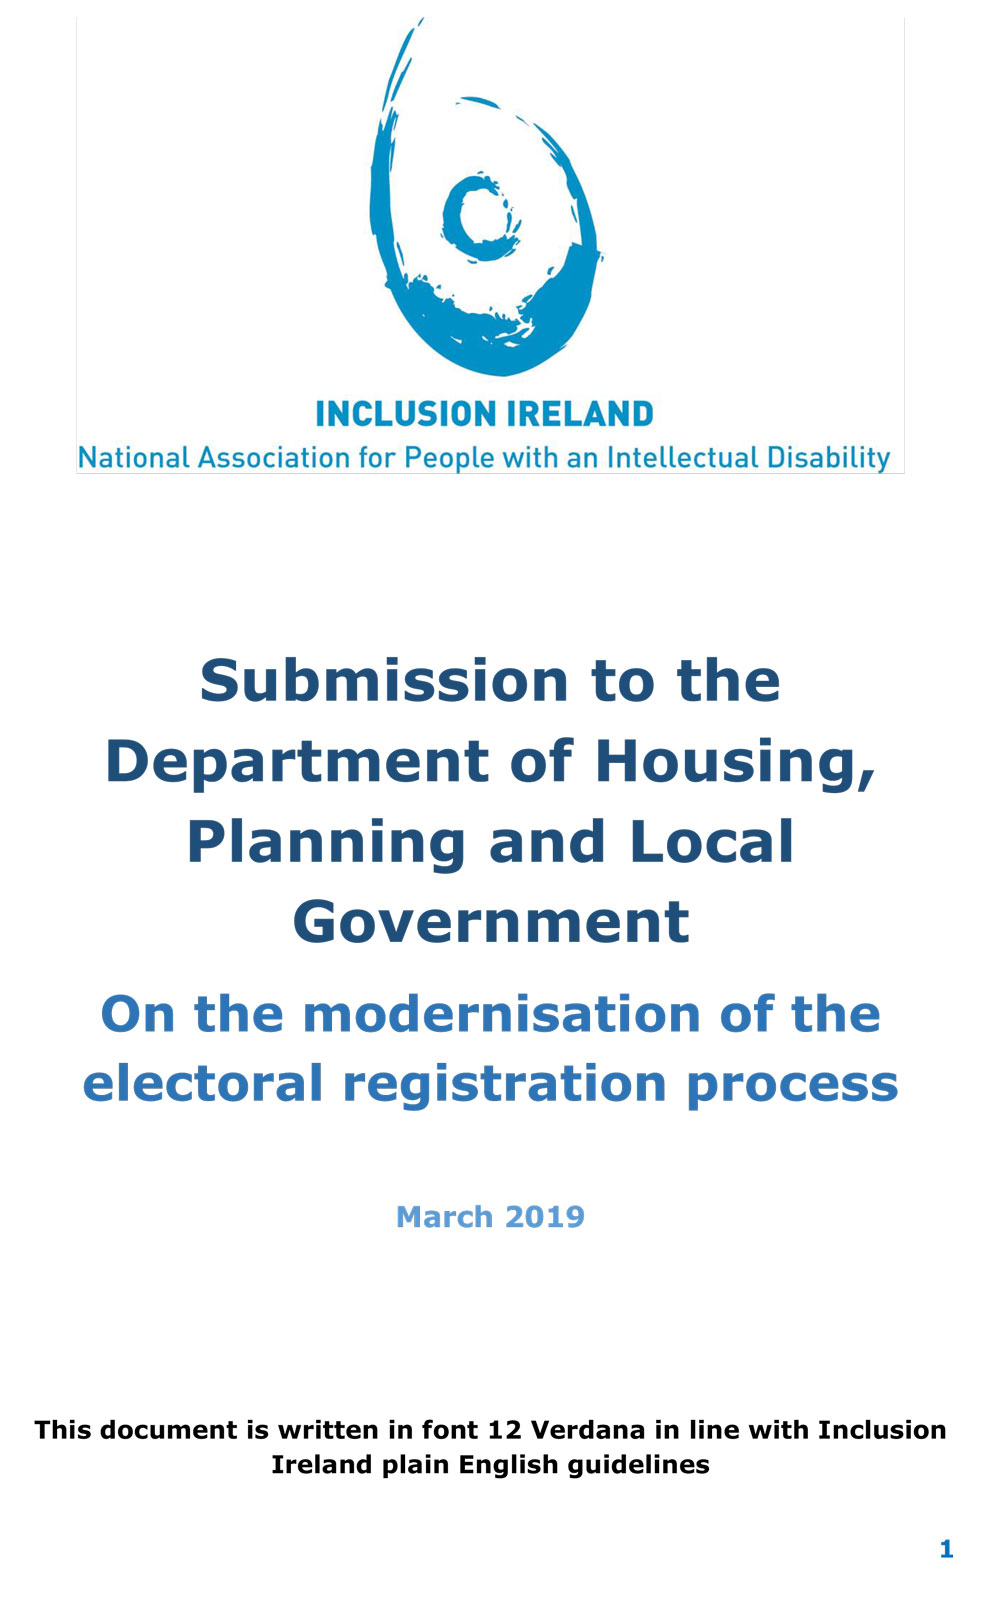 Submission to the Department of Housing, Planning and Local Government on the Modernisation of the Electoral Registration Process 2019